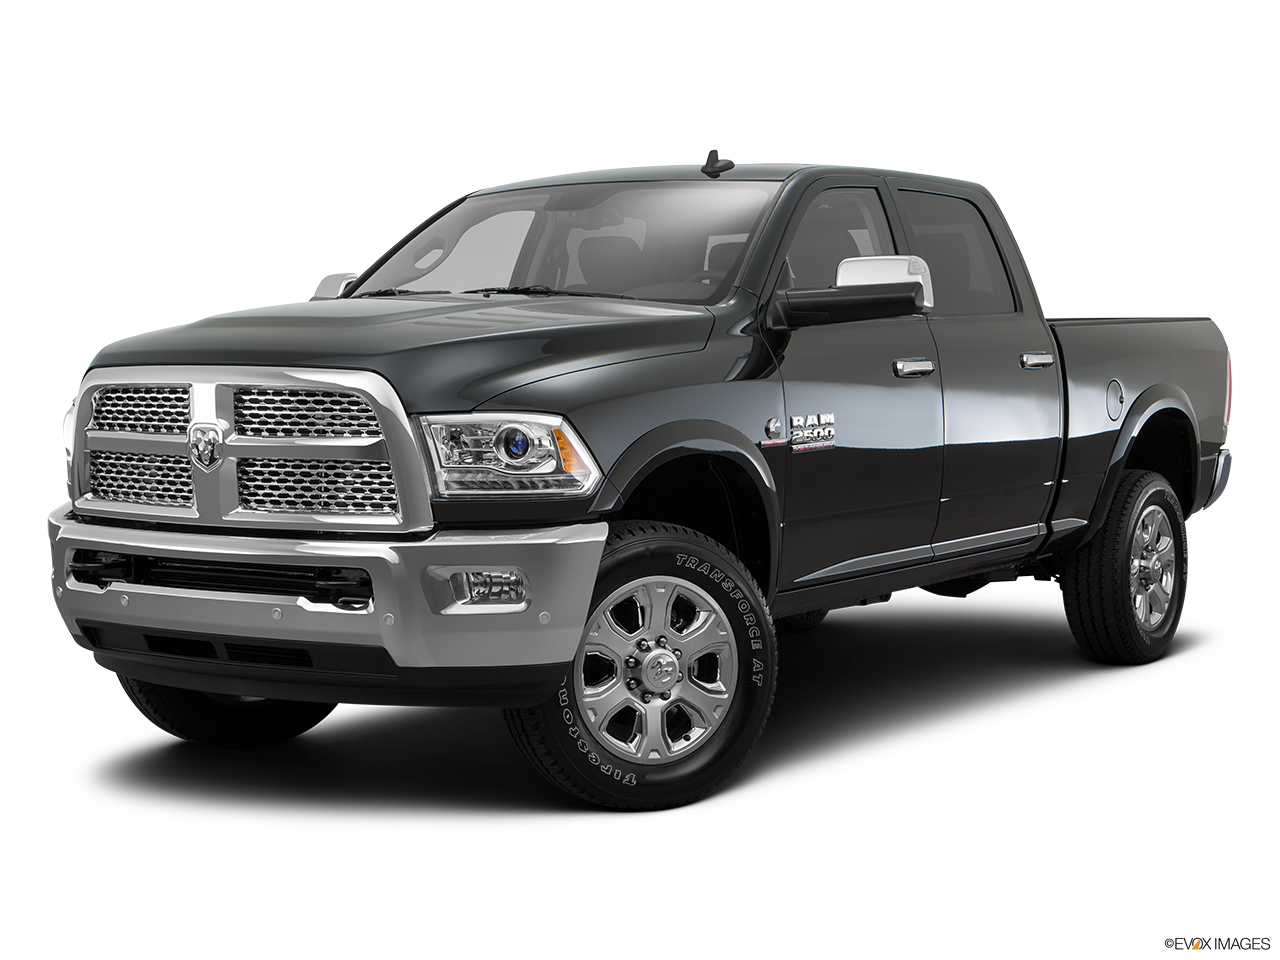 Test Drive A 2016 RAM 2500 at Moss Bros Chrysler Dodge Jeep Ram Riverside in Riverside